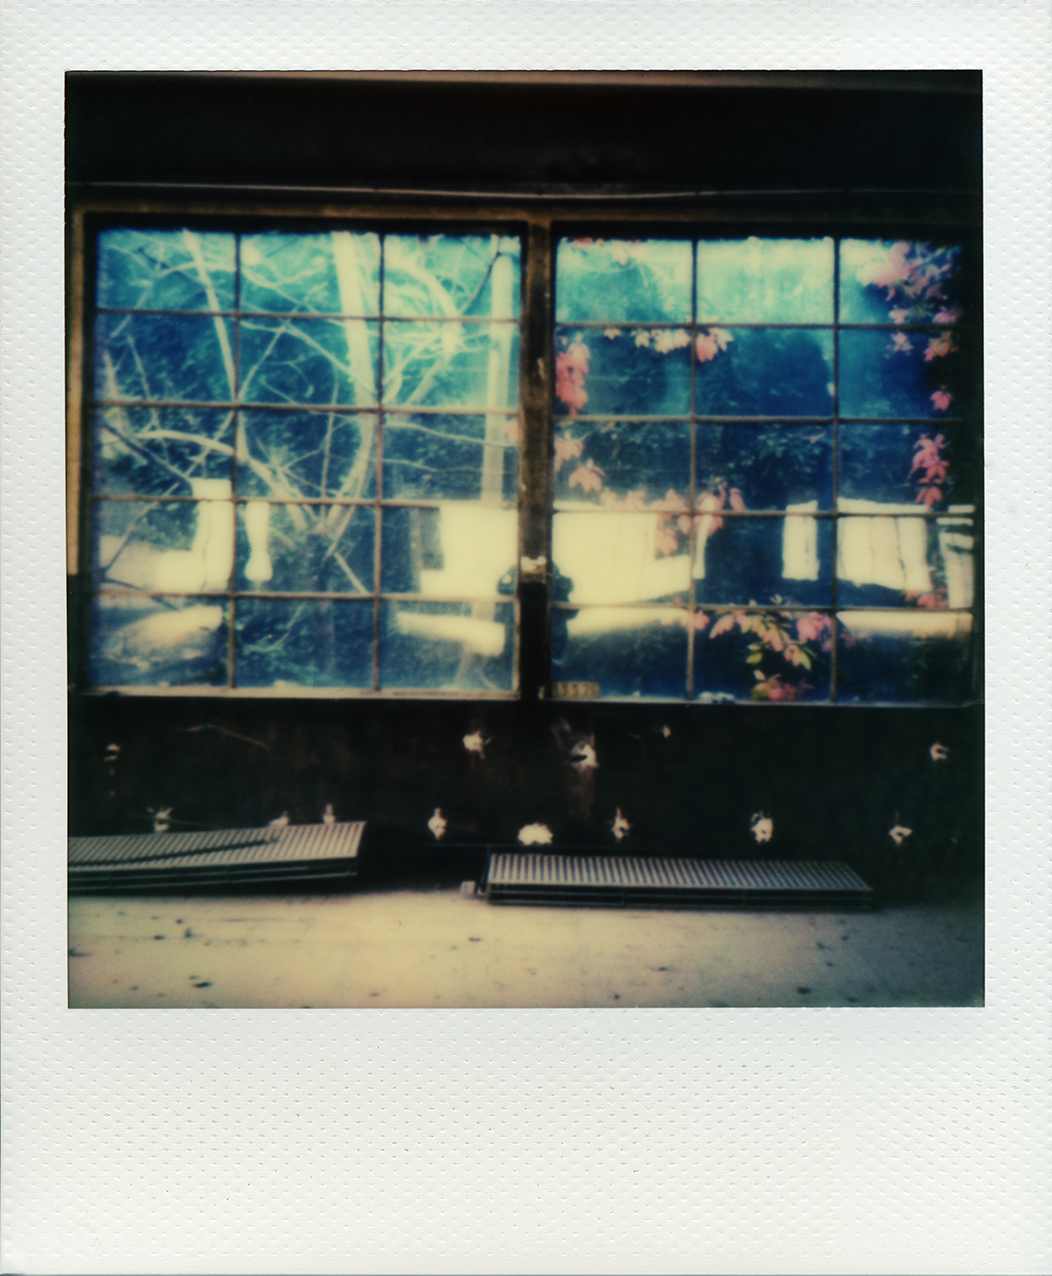 Pola windows 05